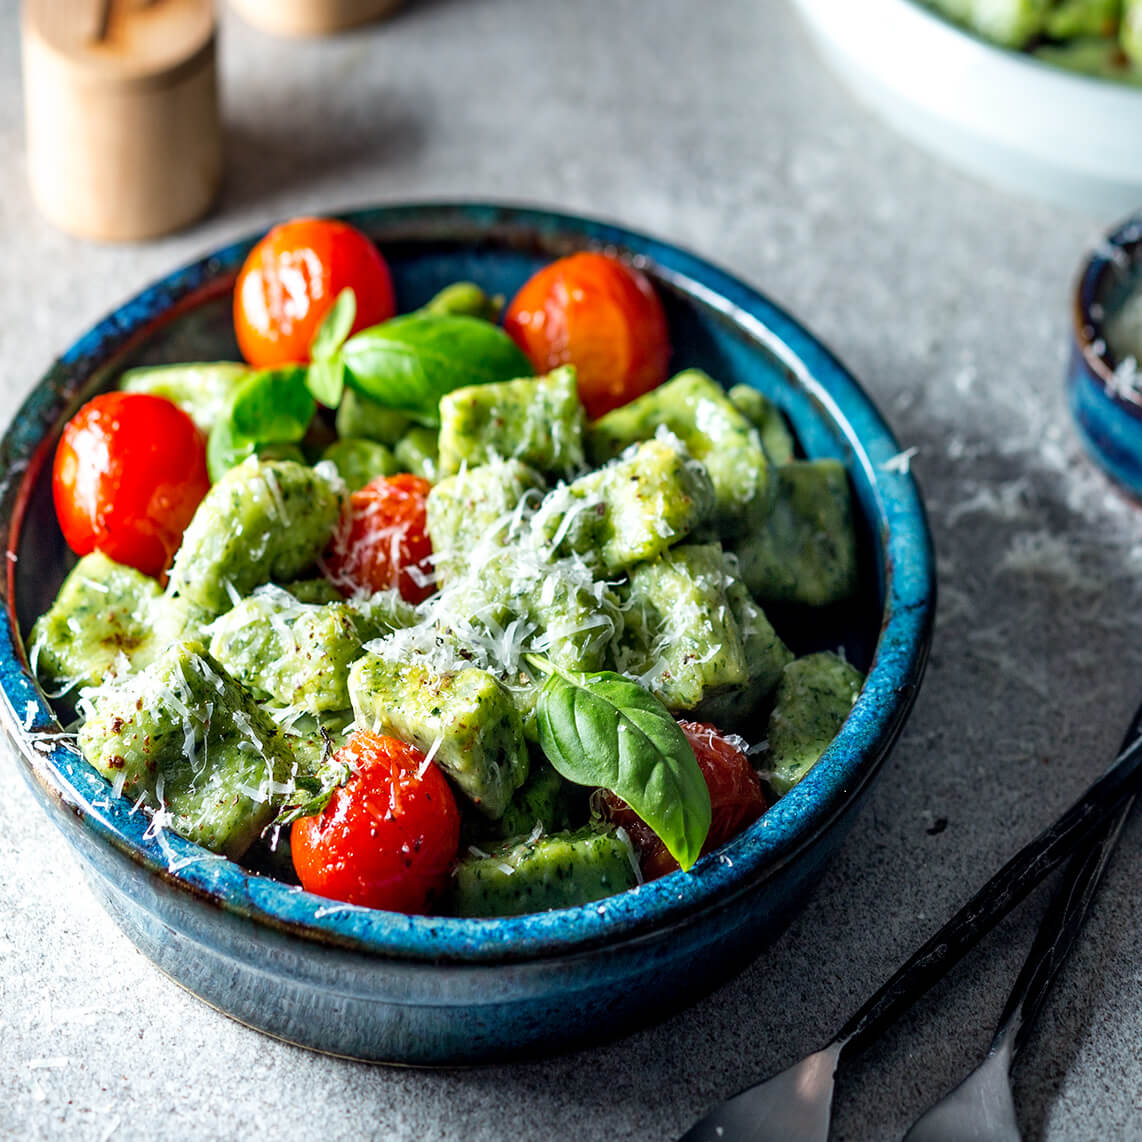 Spinach and parmesan gnocchi